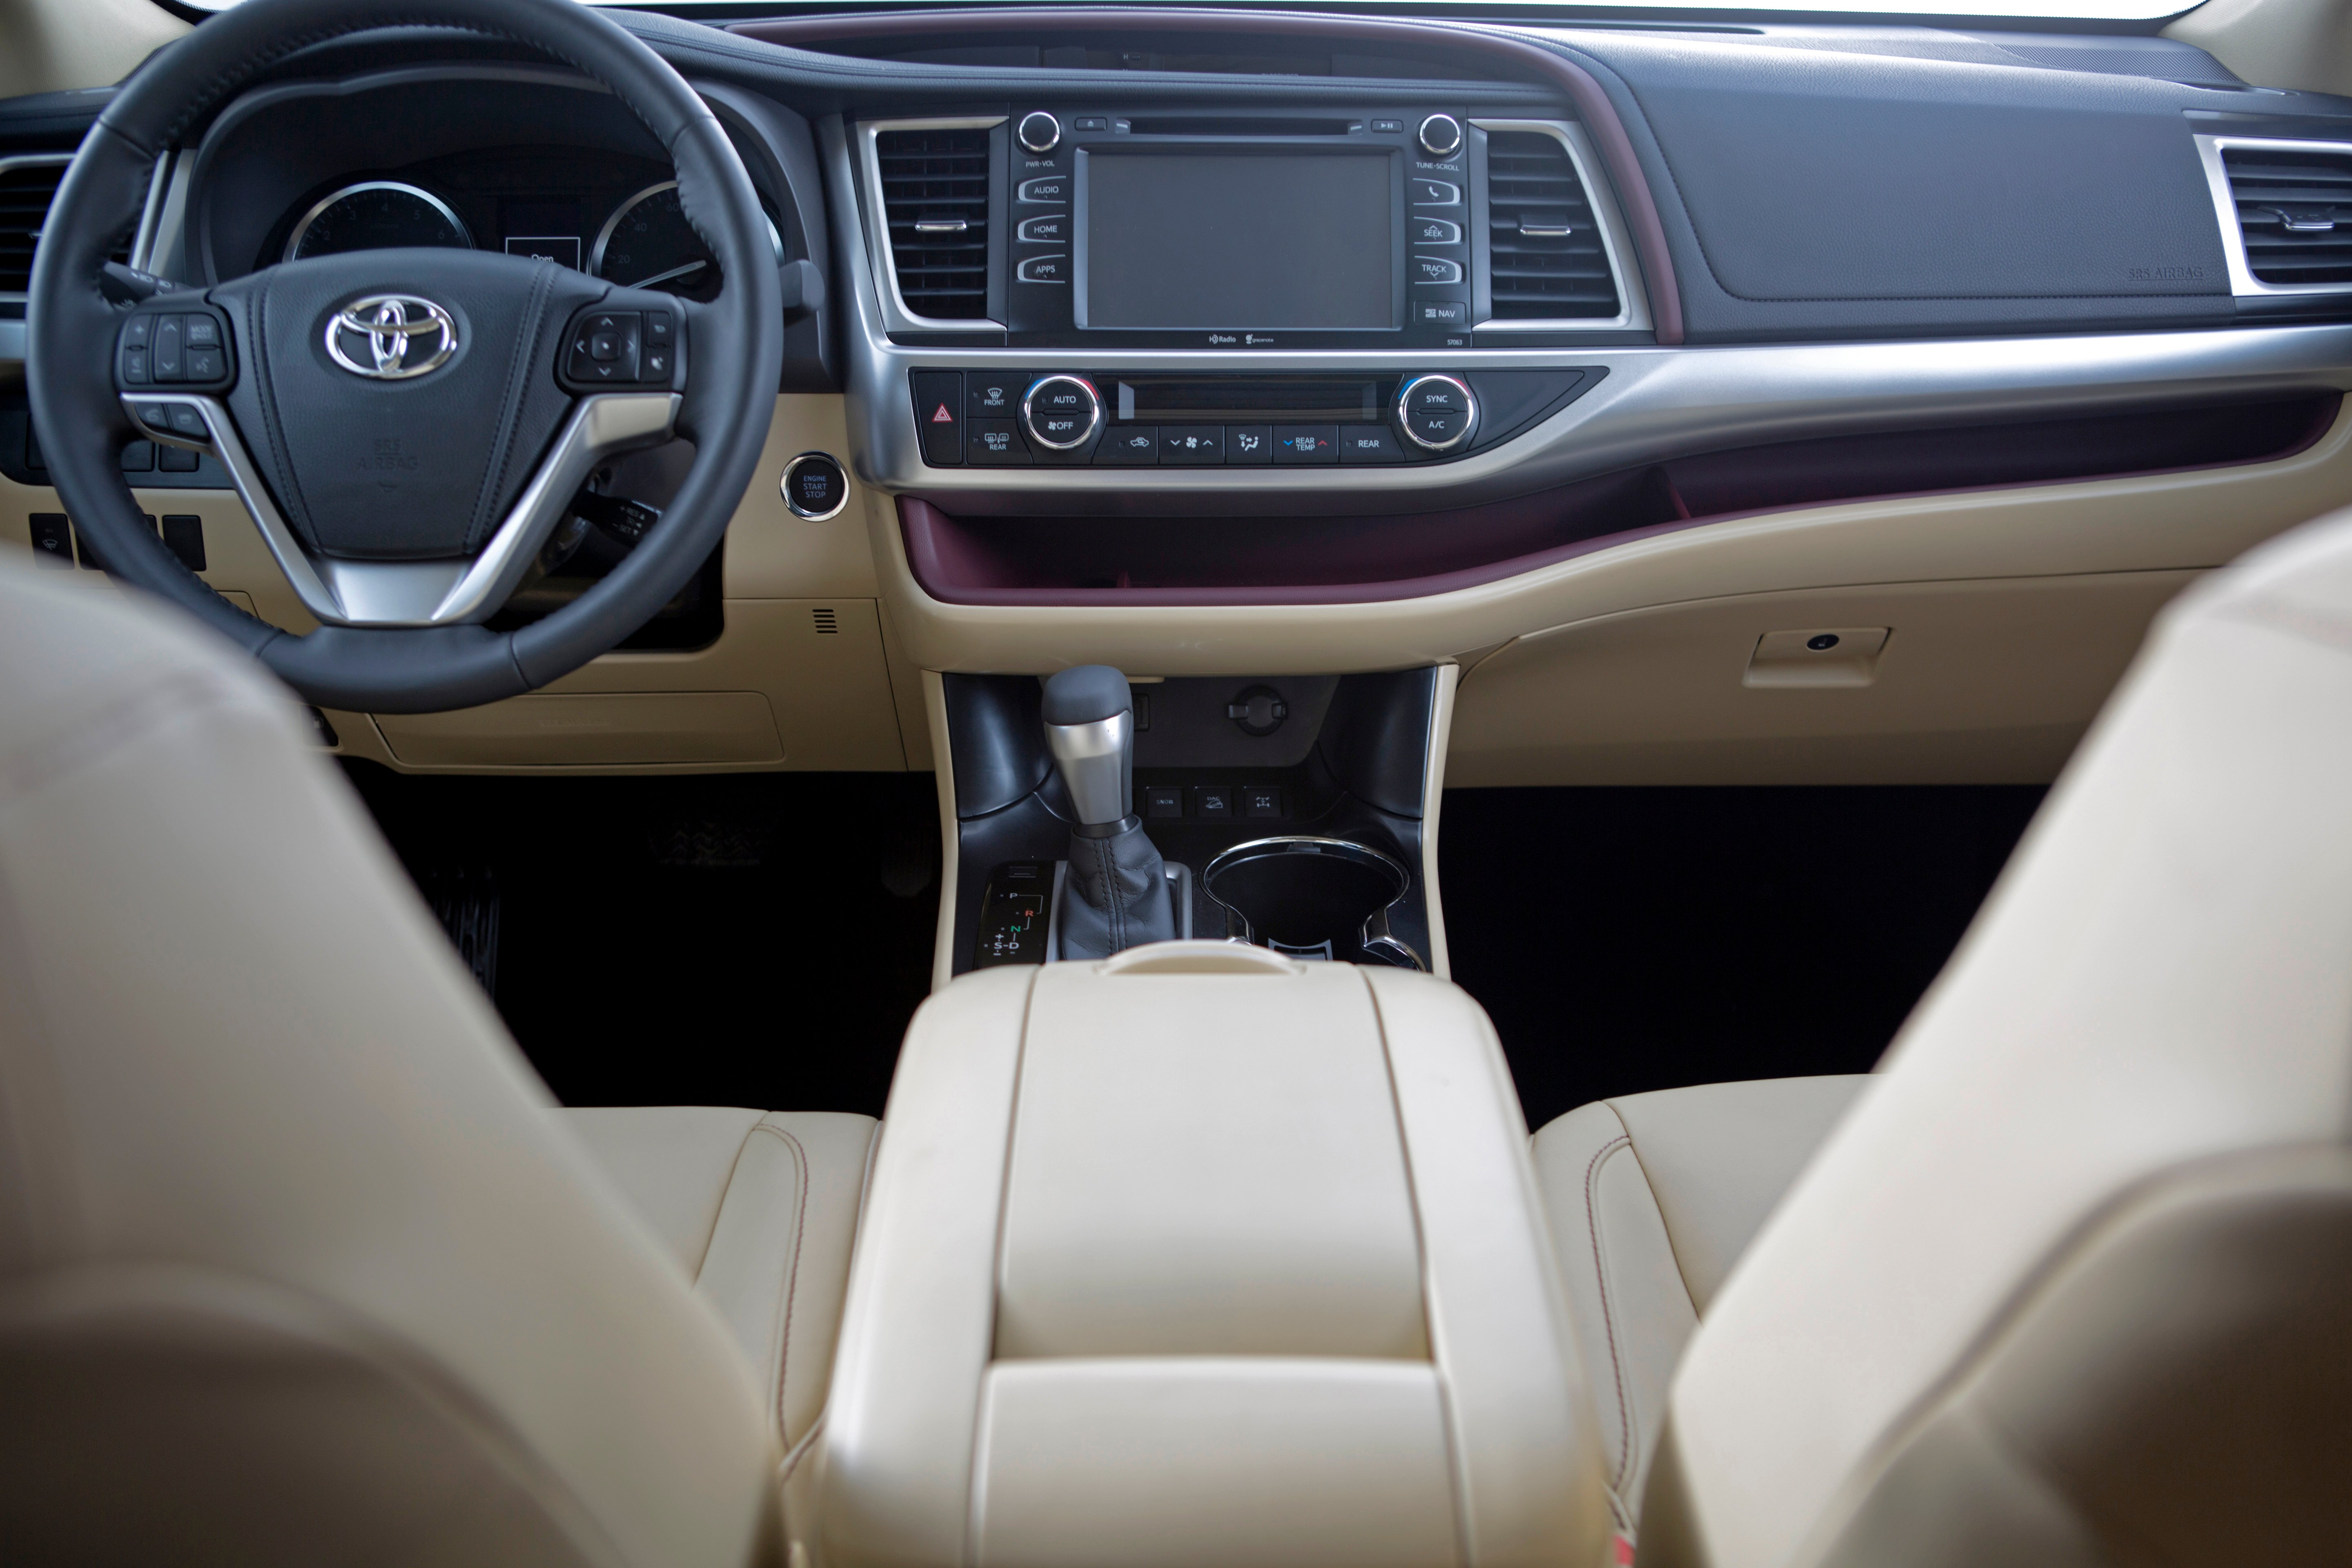 serving sale highlander fwd interior used htm certified le ca los county toyota for angeles bl glendale